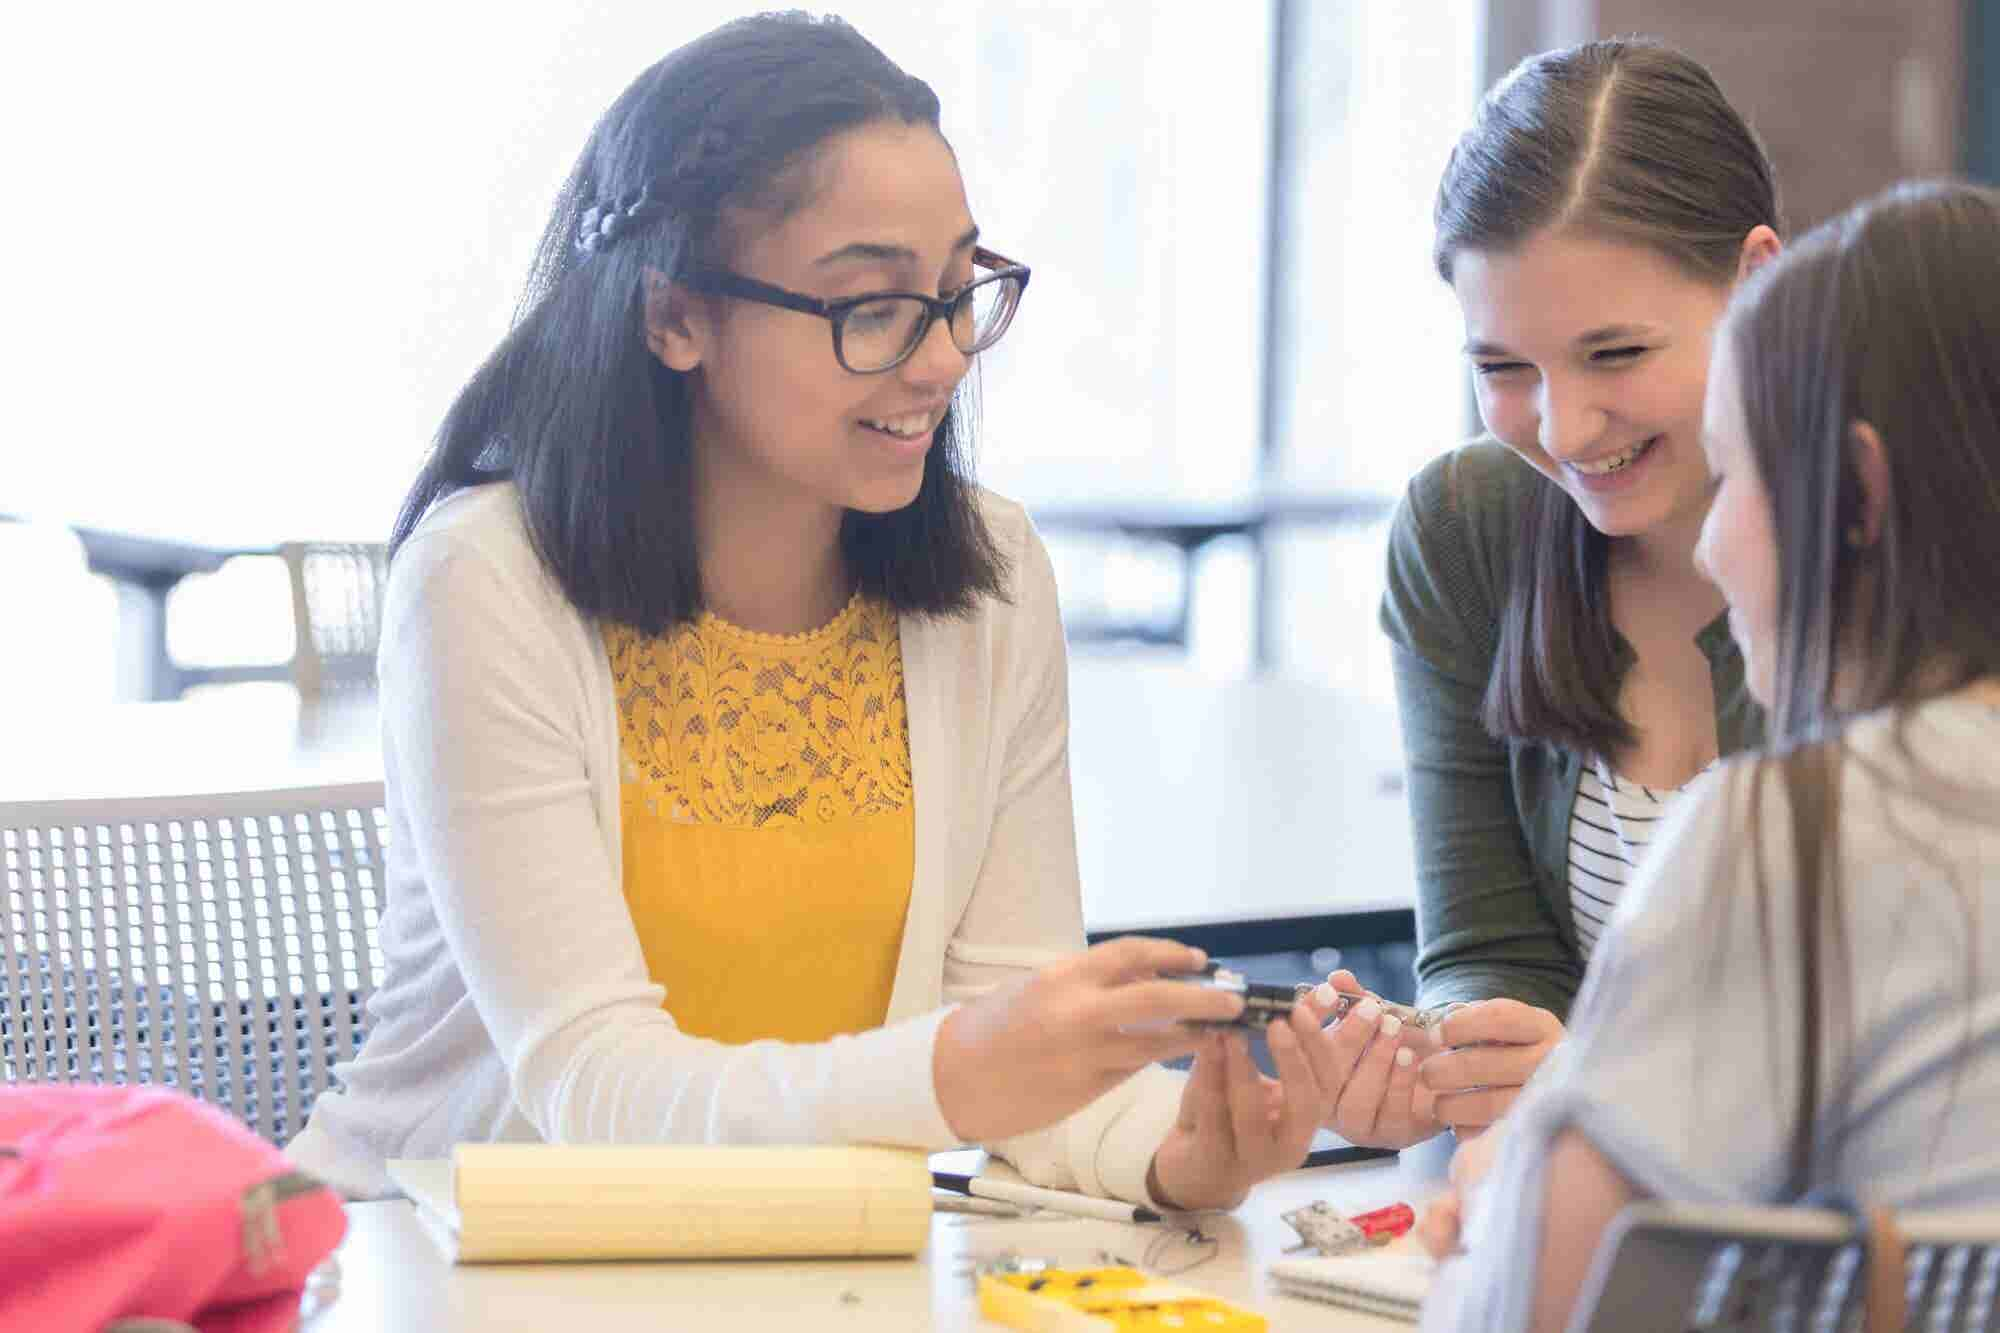 To Protect Our Future, Diversify the STEM Pipeline Through Mentorship